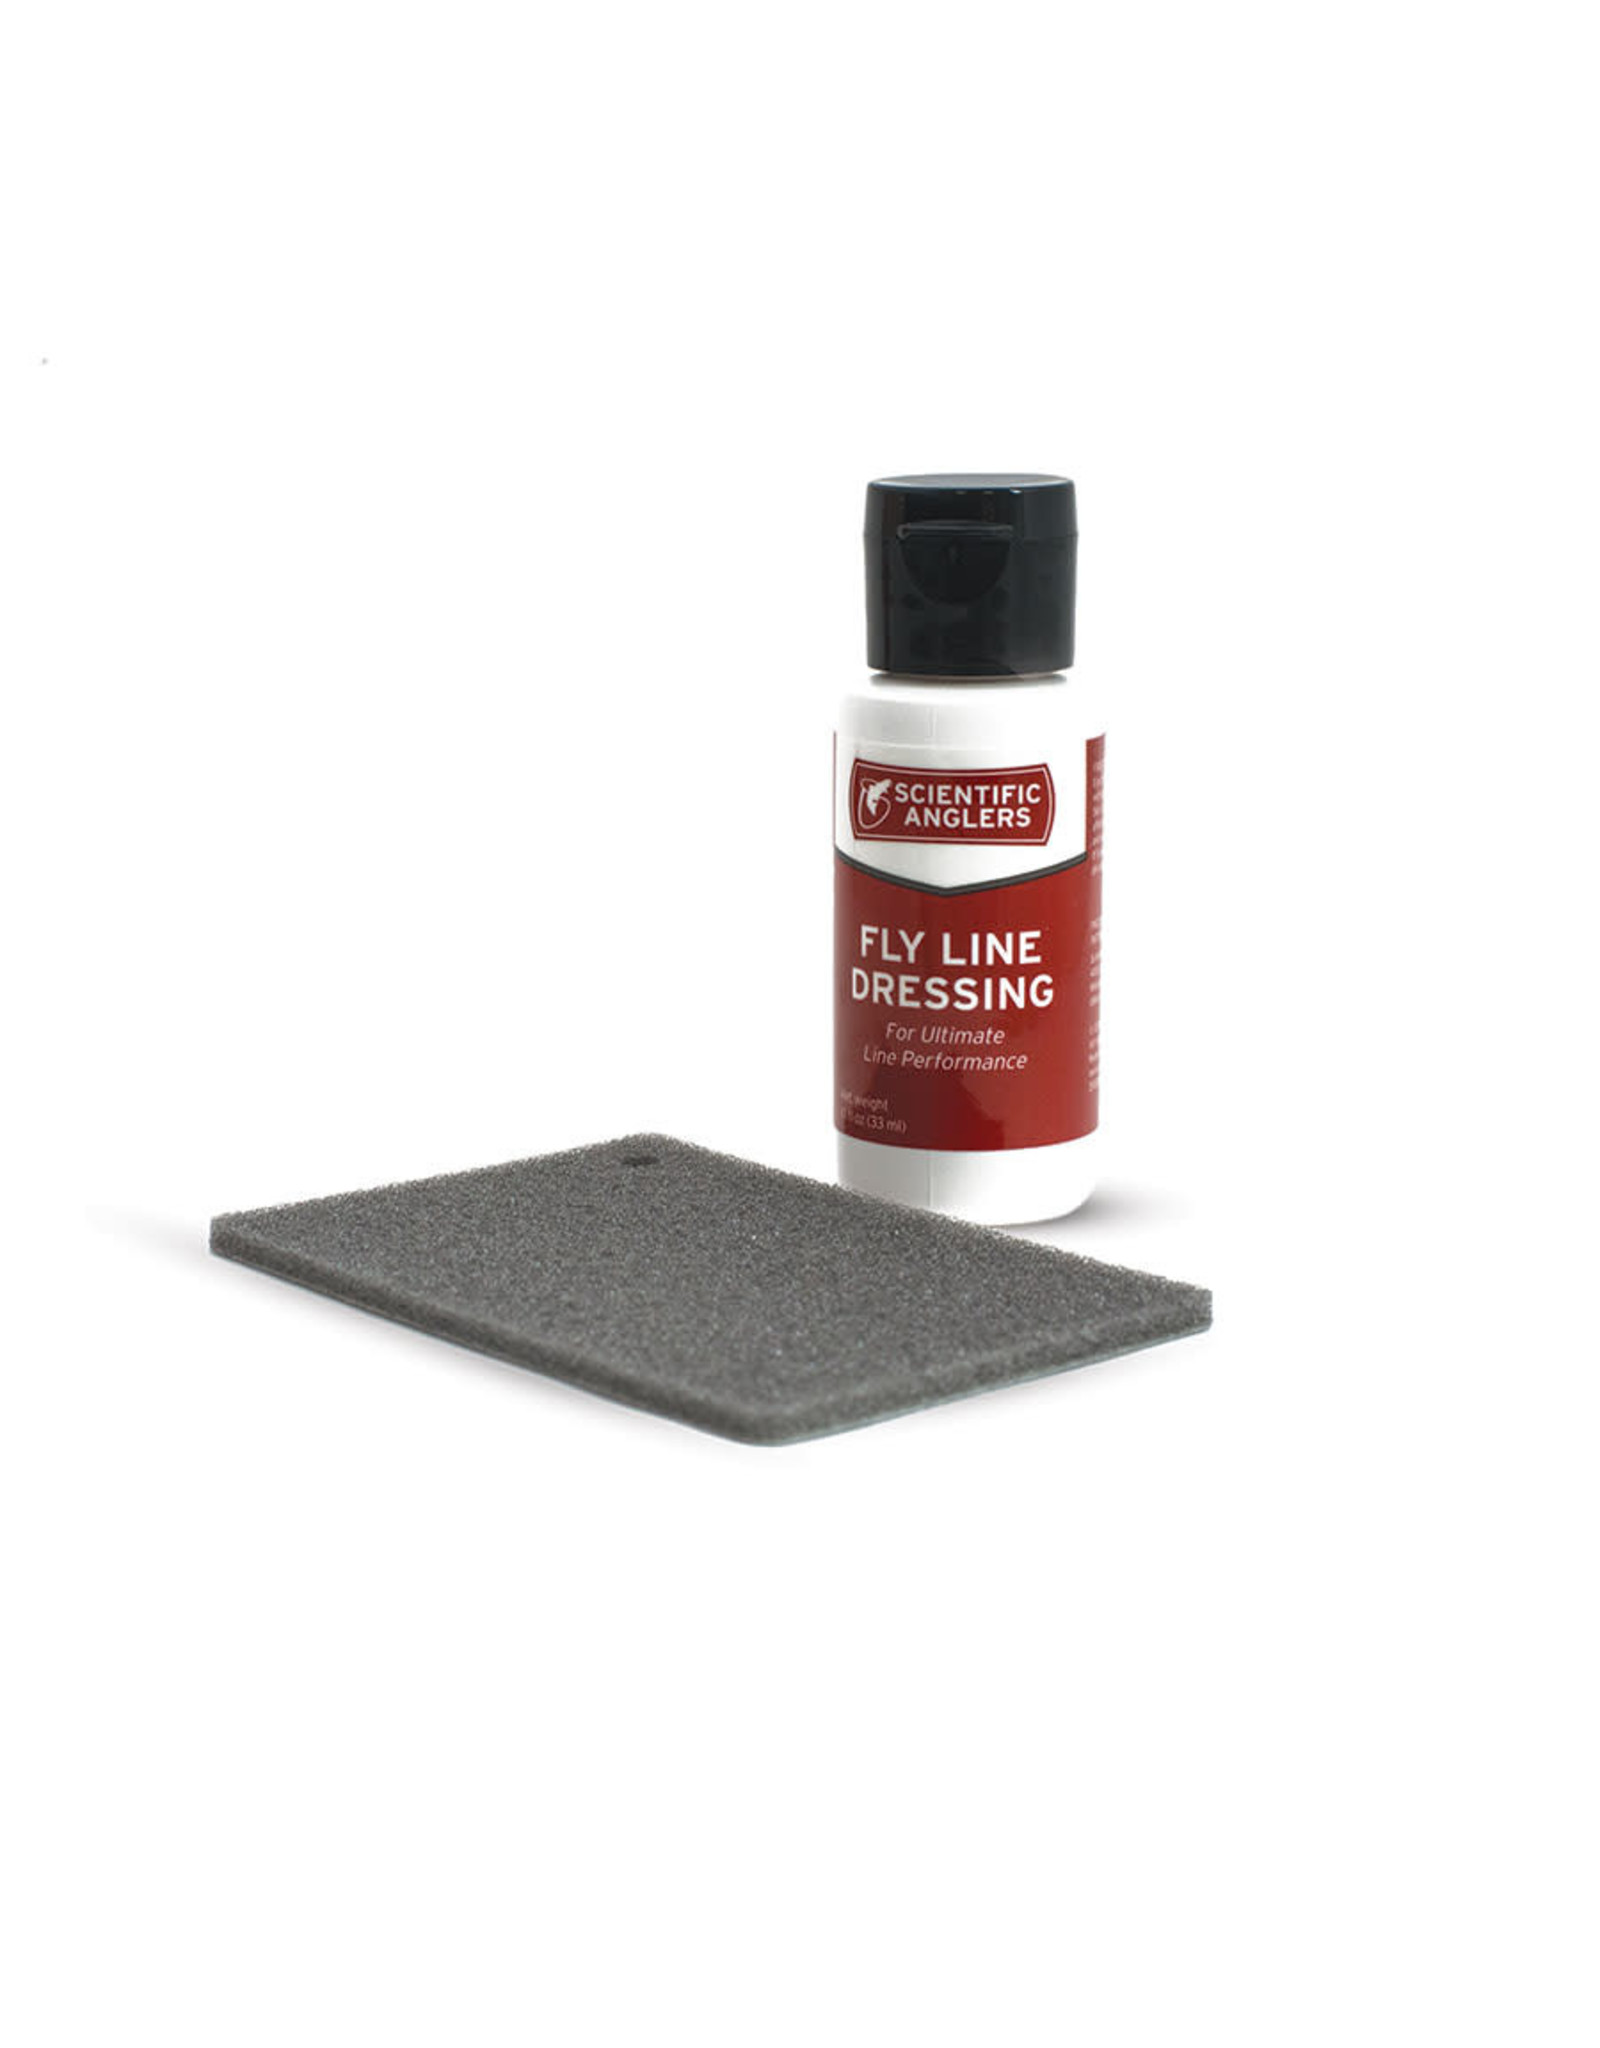 SCIENTIFIC ANGLERS Fly Line Dressing with pad